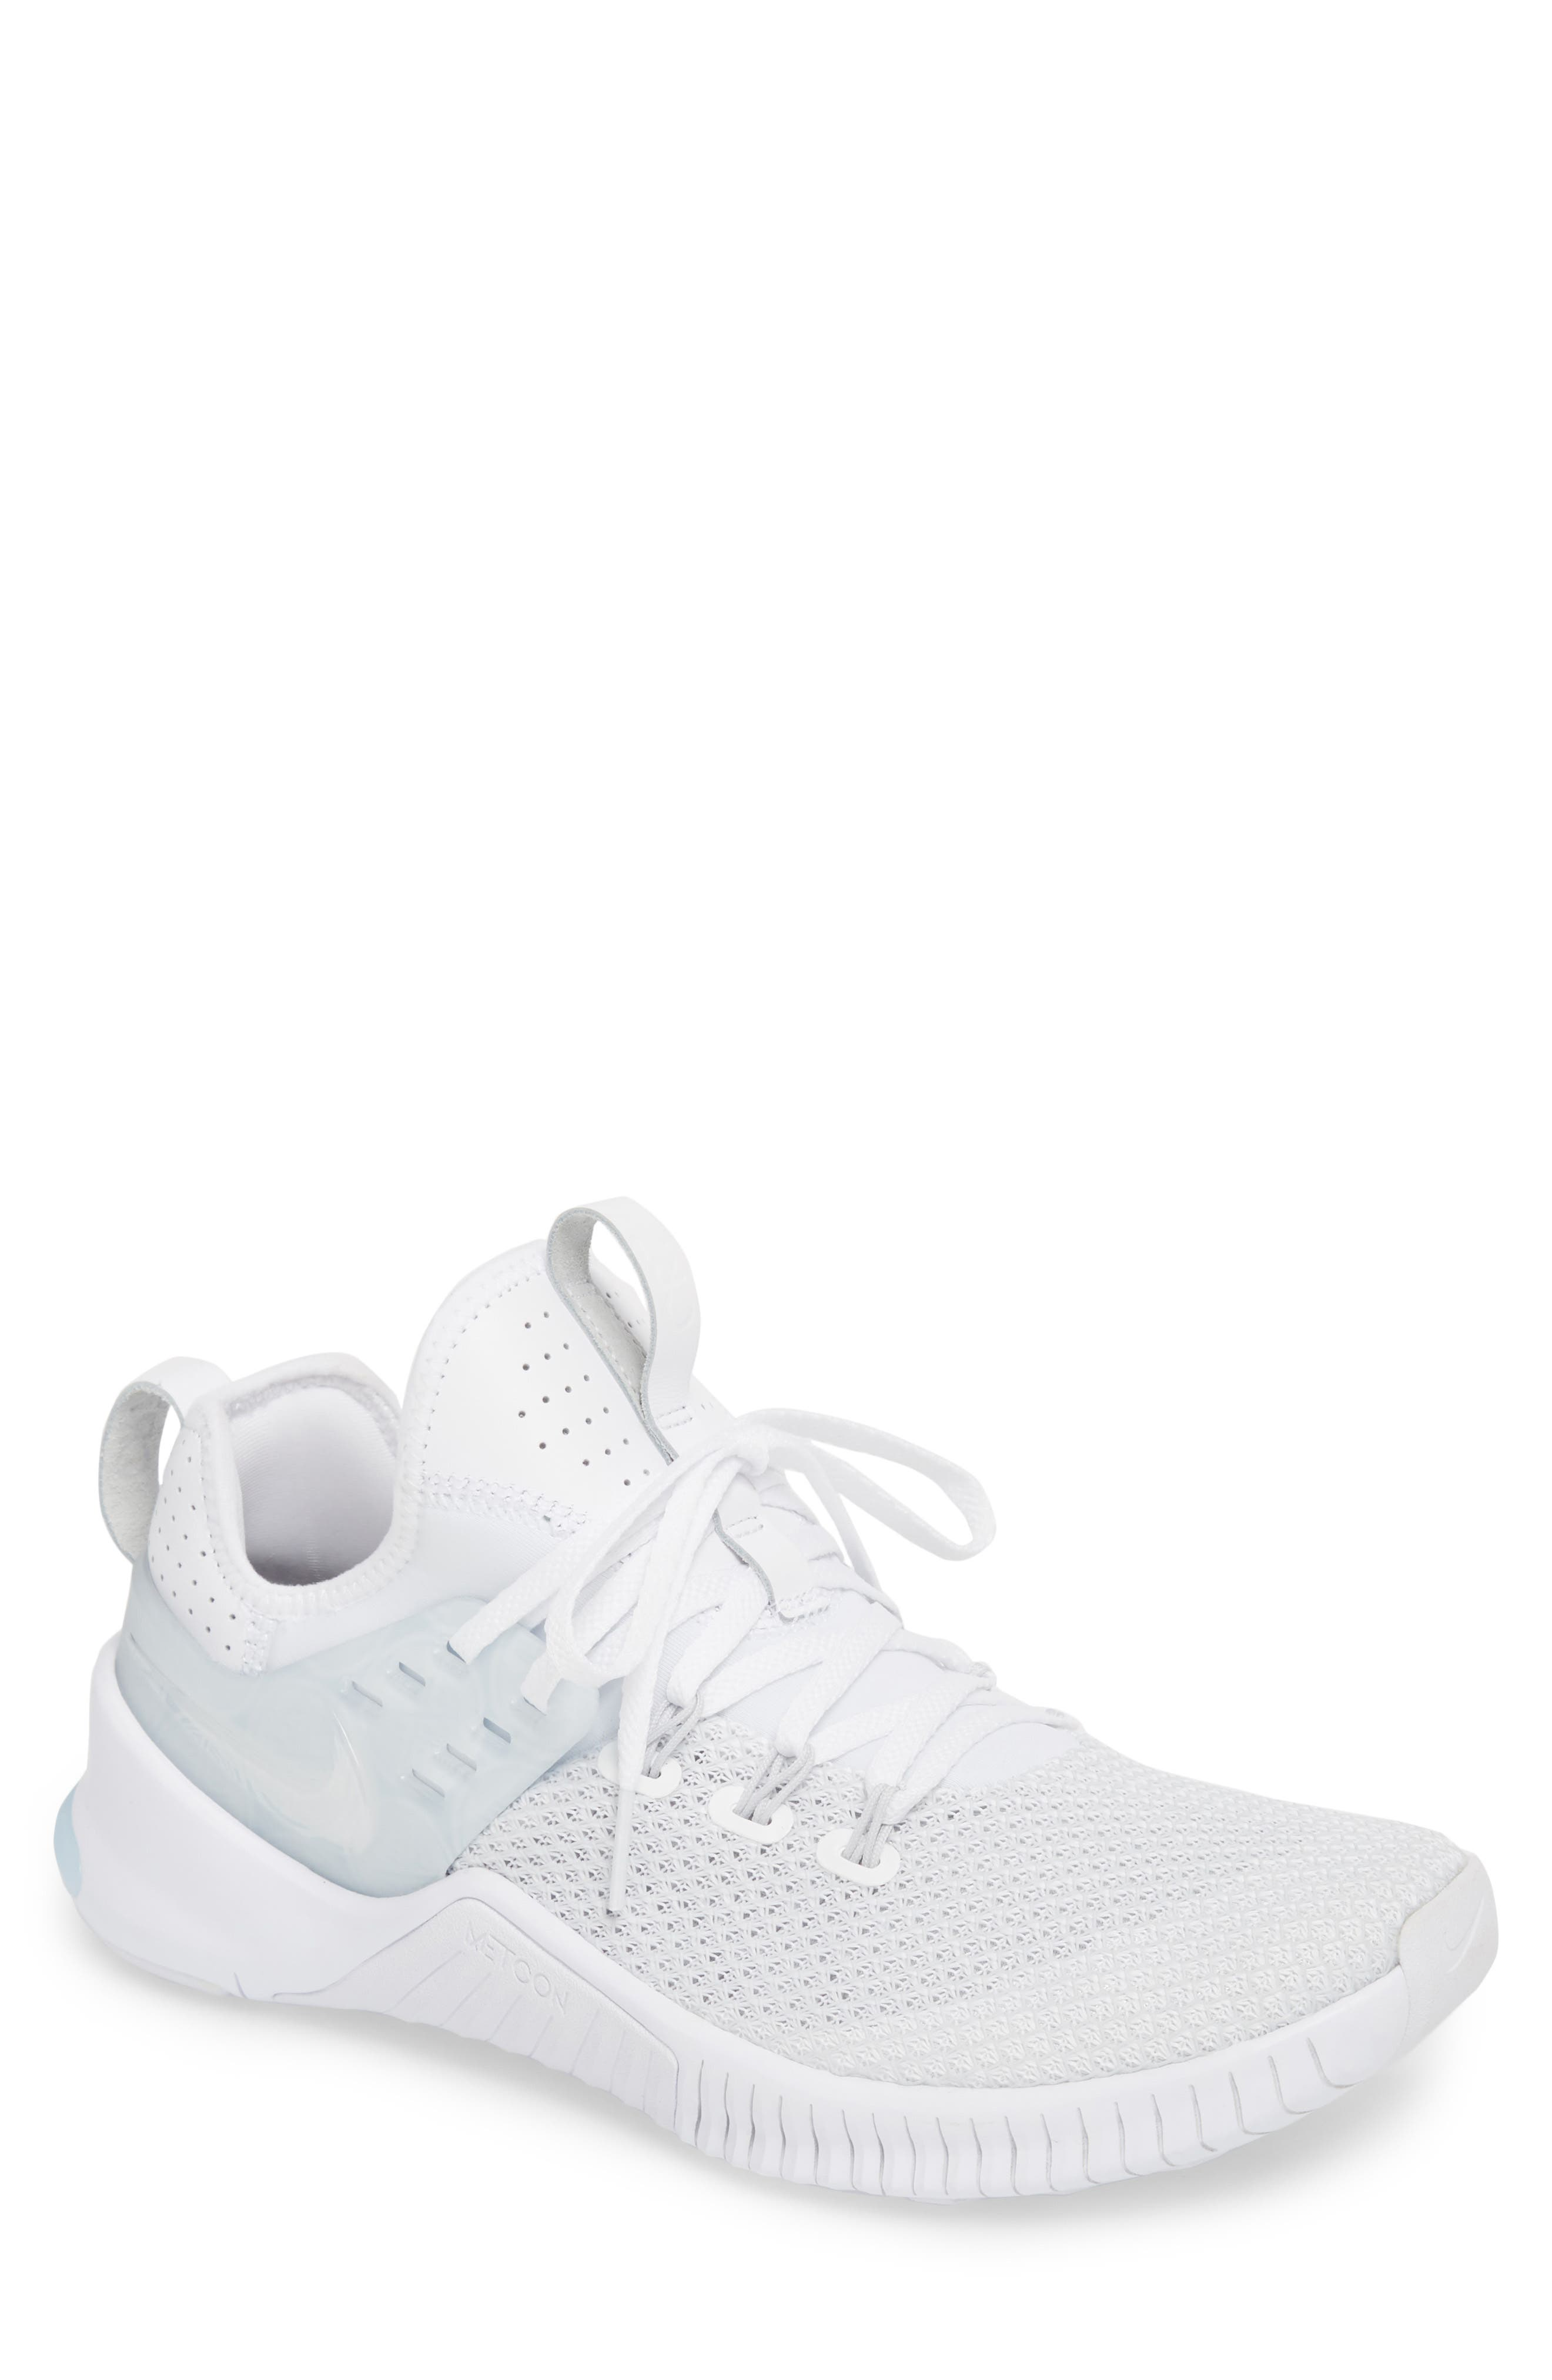 Free x Metcon CR7 Training Shoe,                         Main,                         color, White/ White